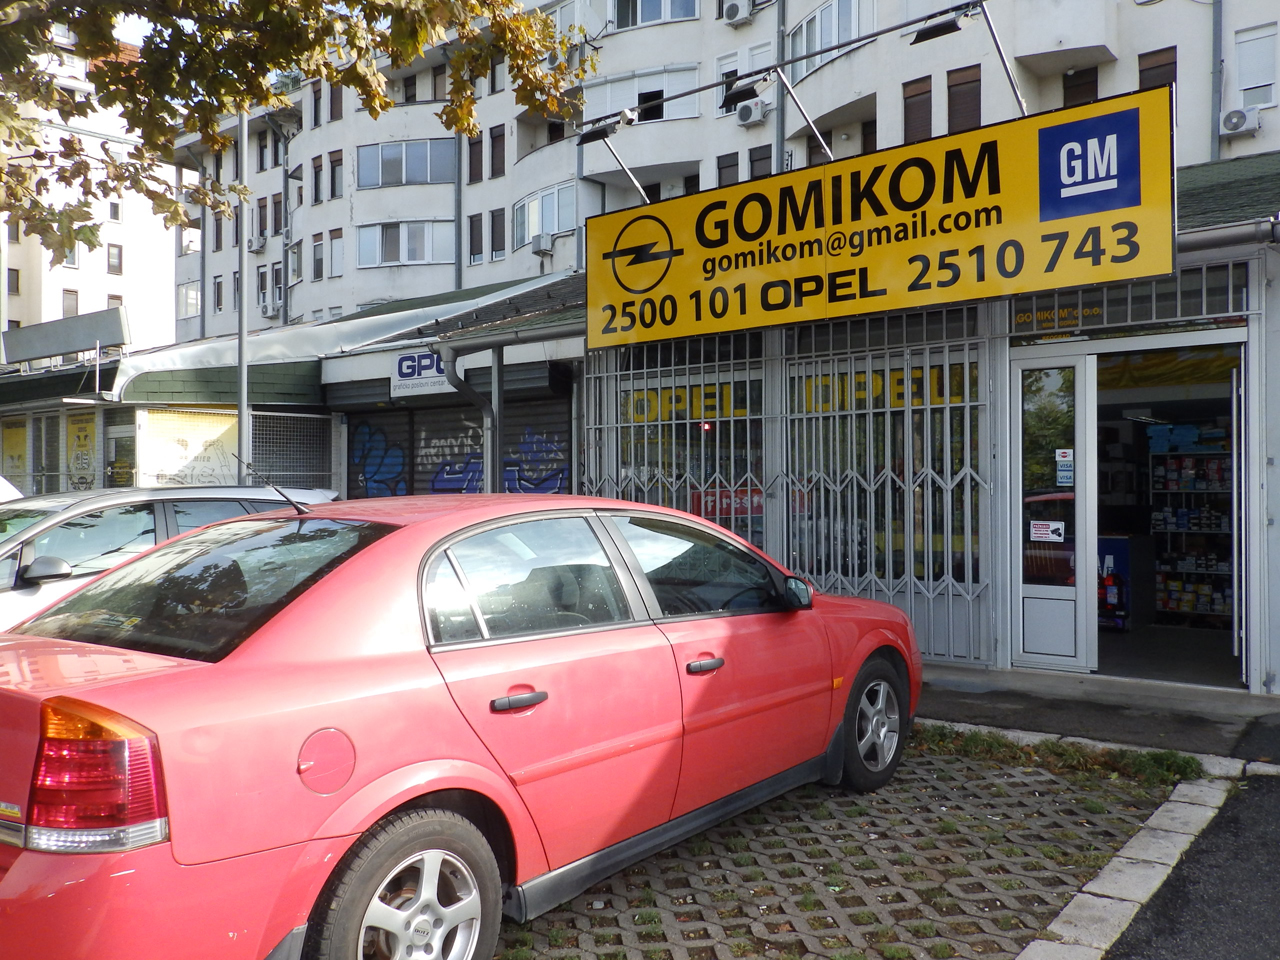 OPEL GOMIKOM Replacement parts Beograd